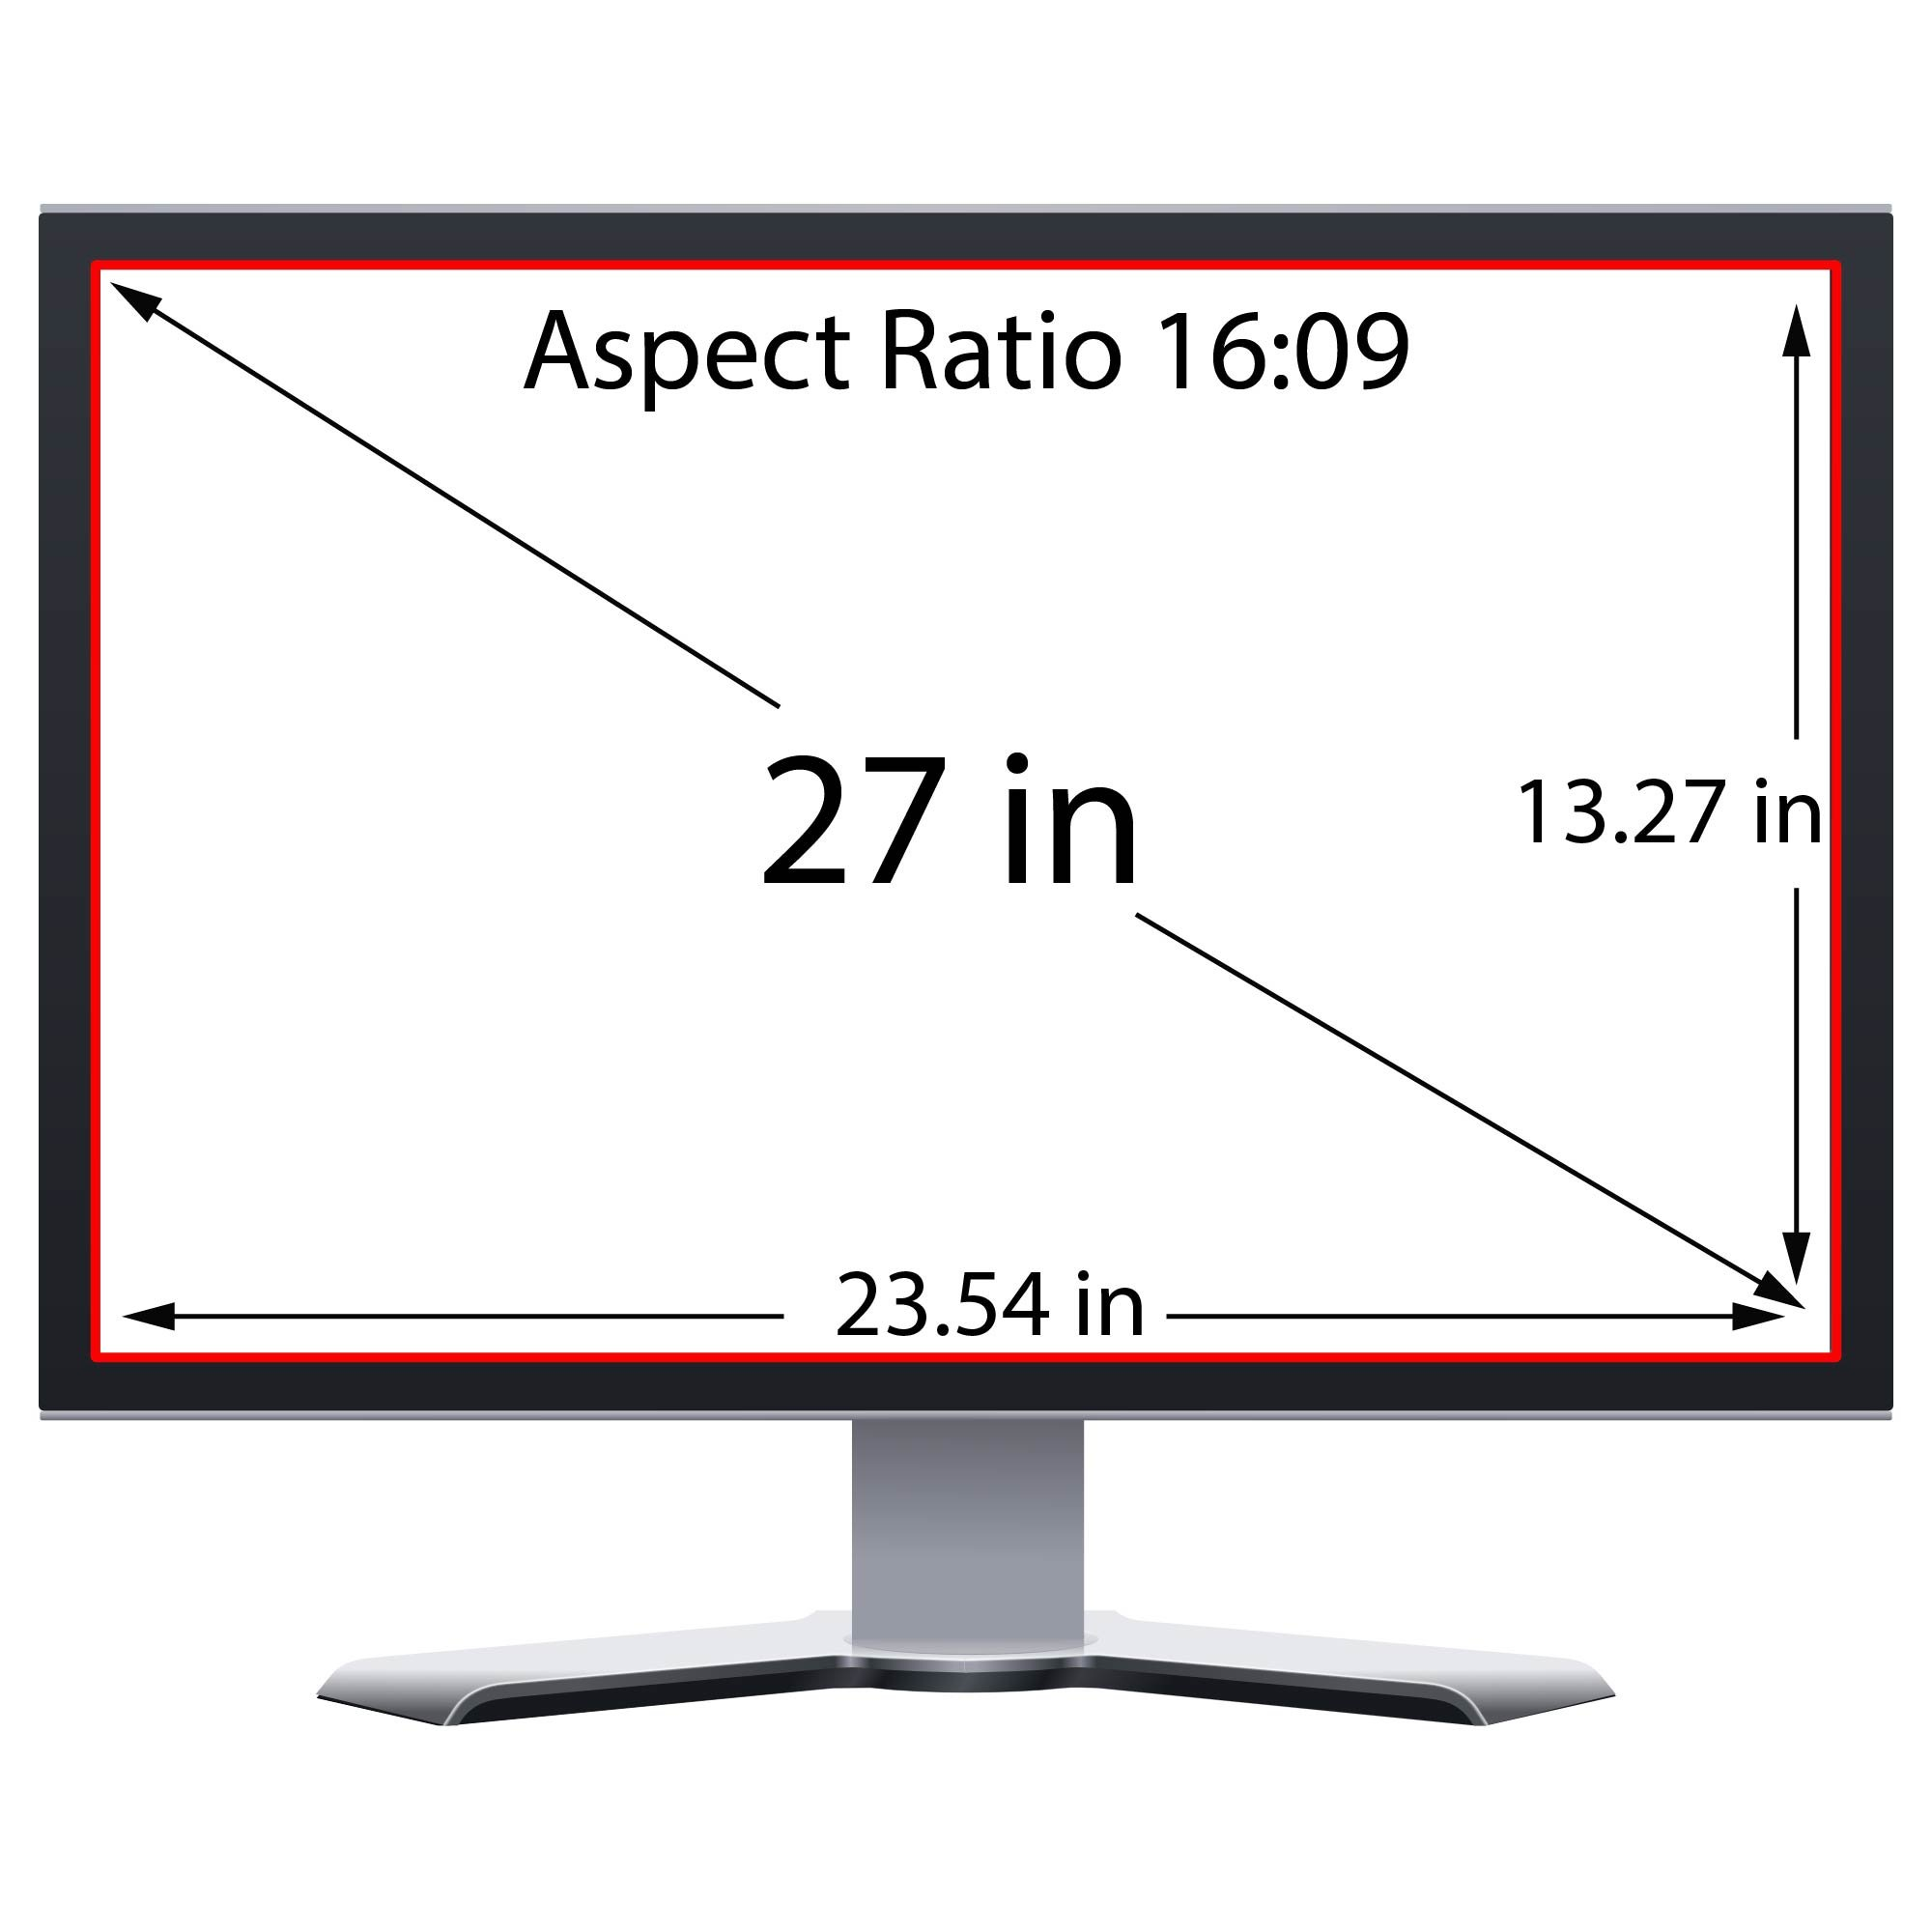 Privacy Screen Filter for 27 Inches Desktop Computer Widescreen Monitor with Aspect Ratio 16:09 Please check Dimension Carefully